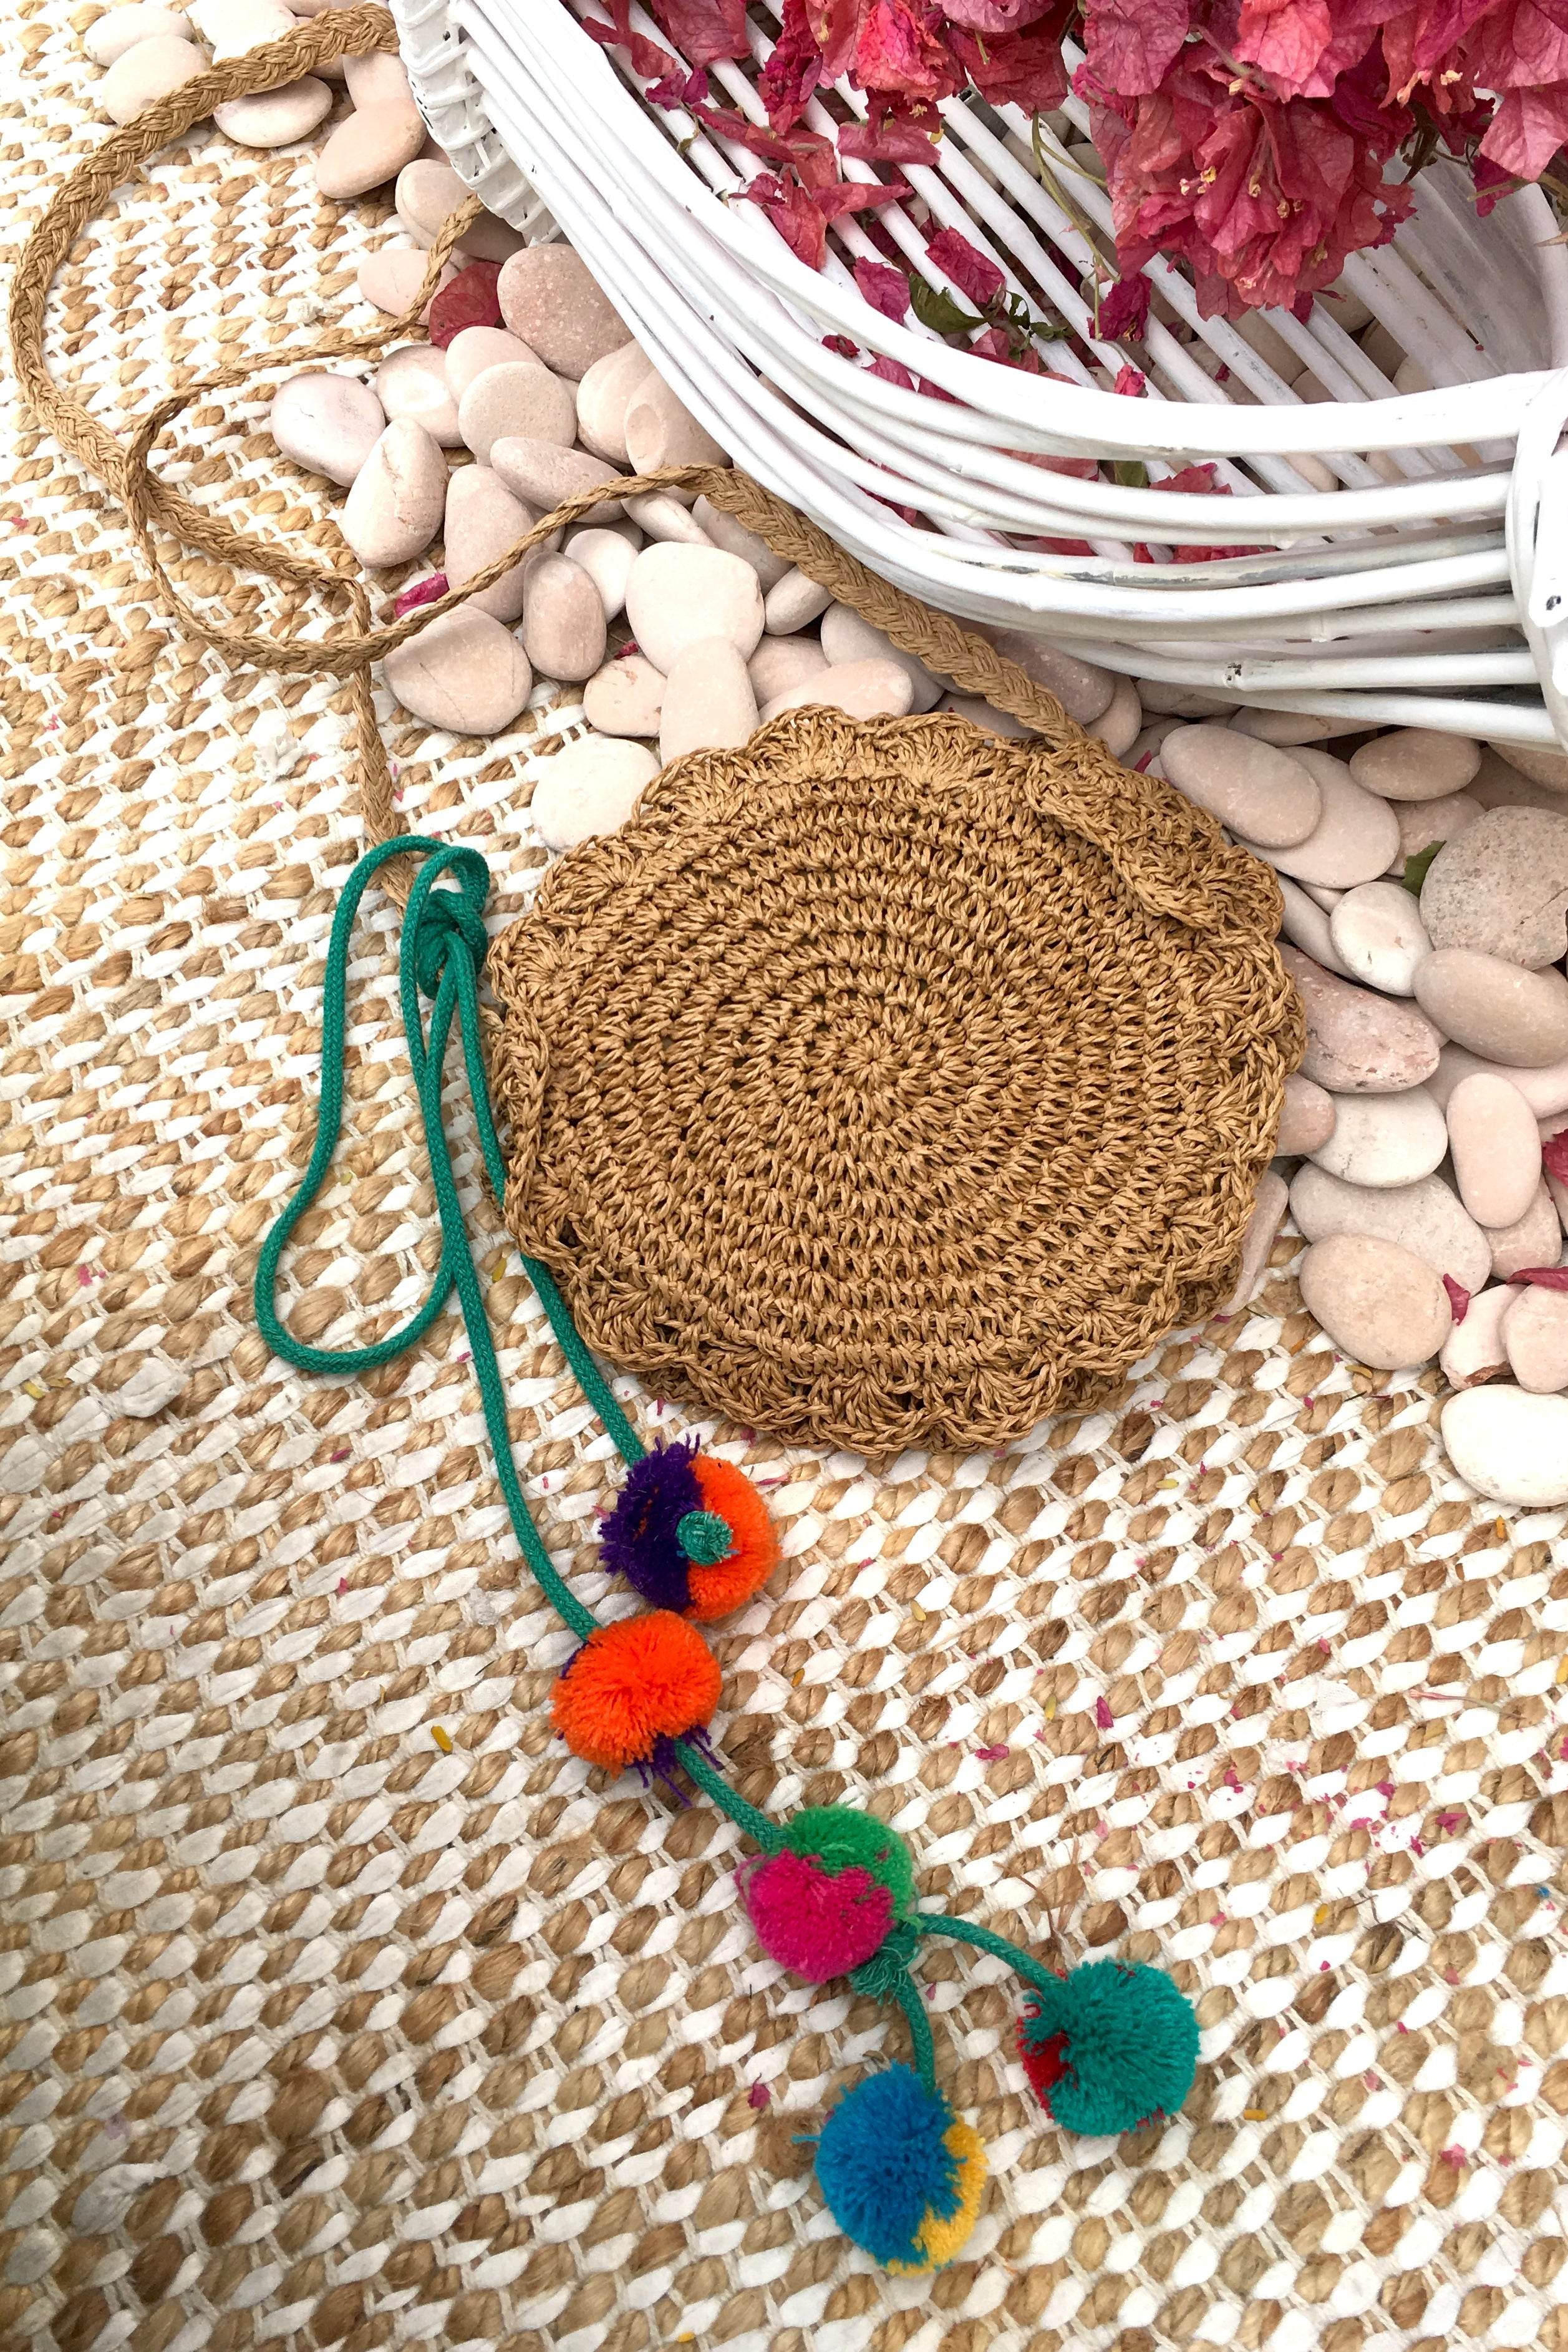 Bag Lillie Little Round in biscuit colour